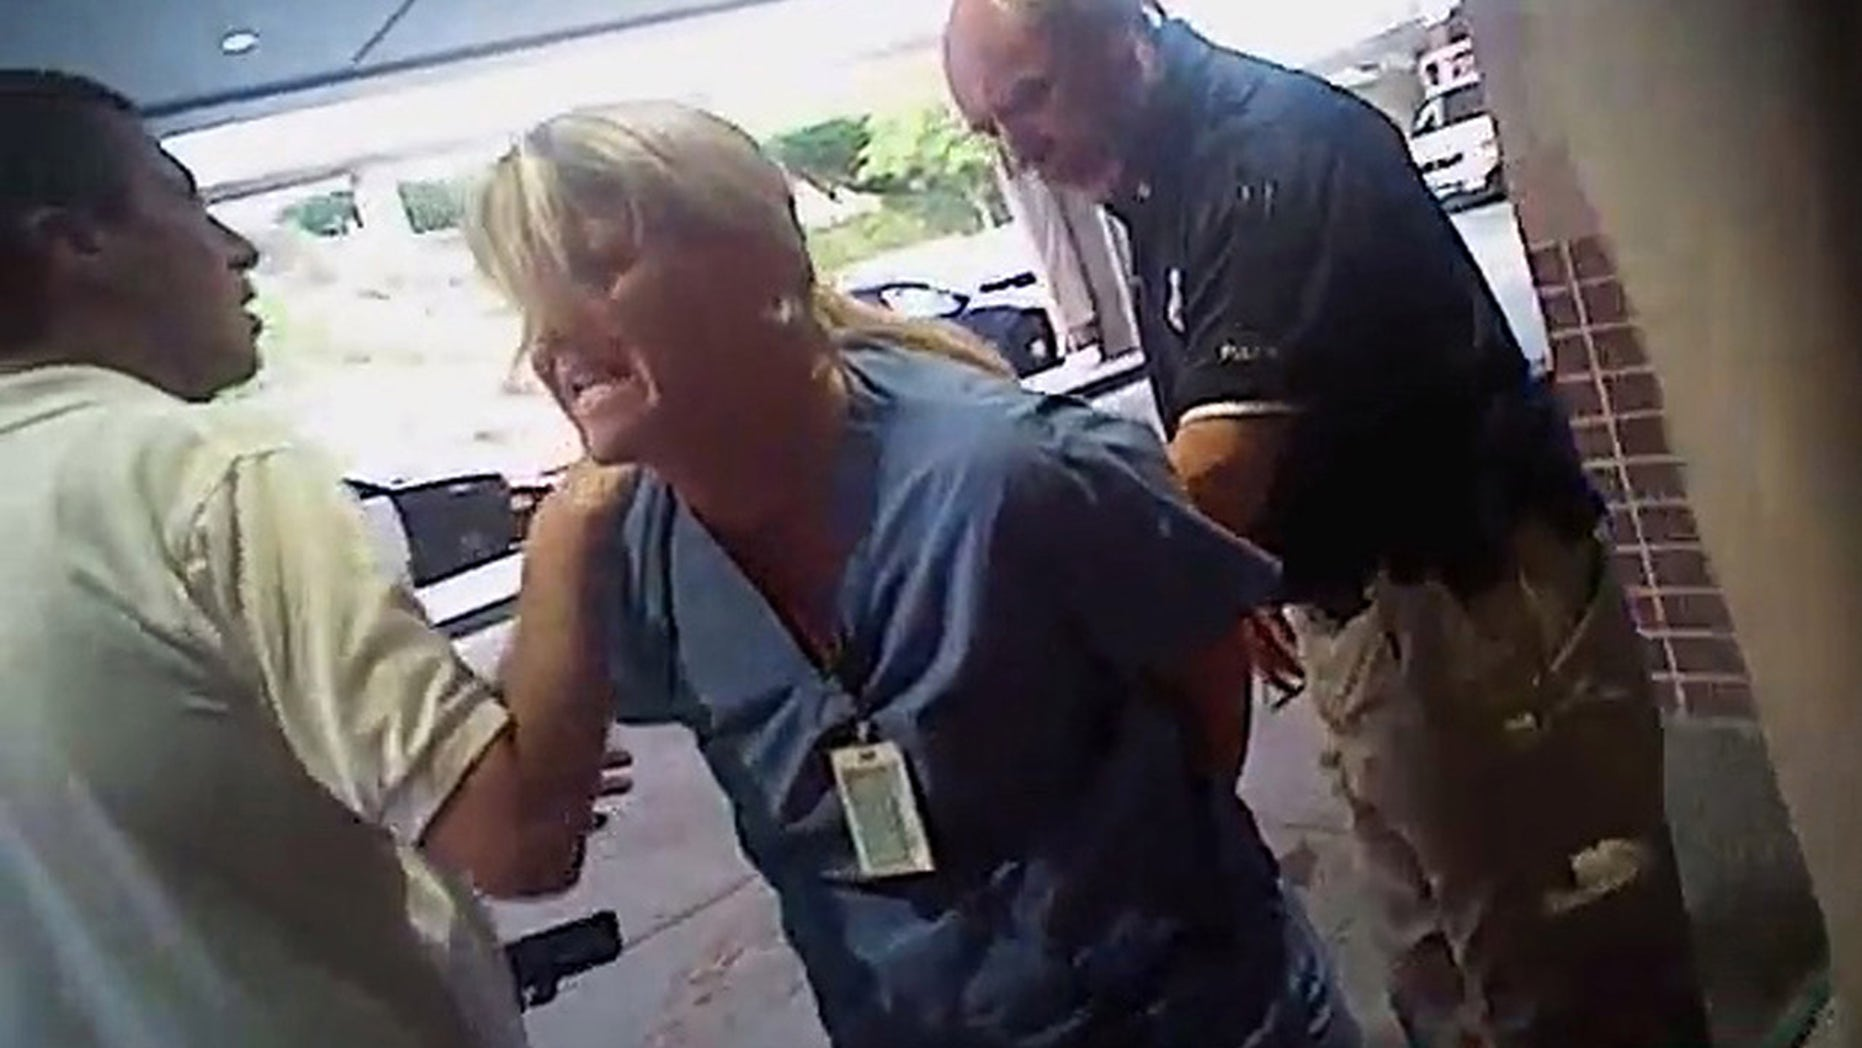 July 26, 2017: In this frame grab from video taken from a police body camera provided by attorney Karra Porter, nurse Alex Wubbels is arrested by a Salt Lake City police officer at University Hospital in Salt Lake City.